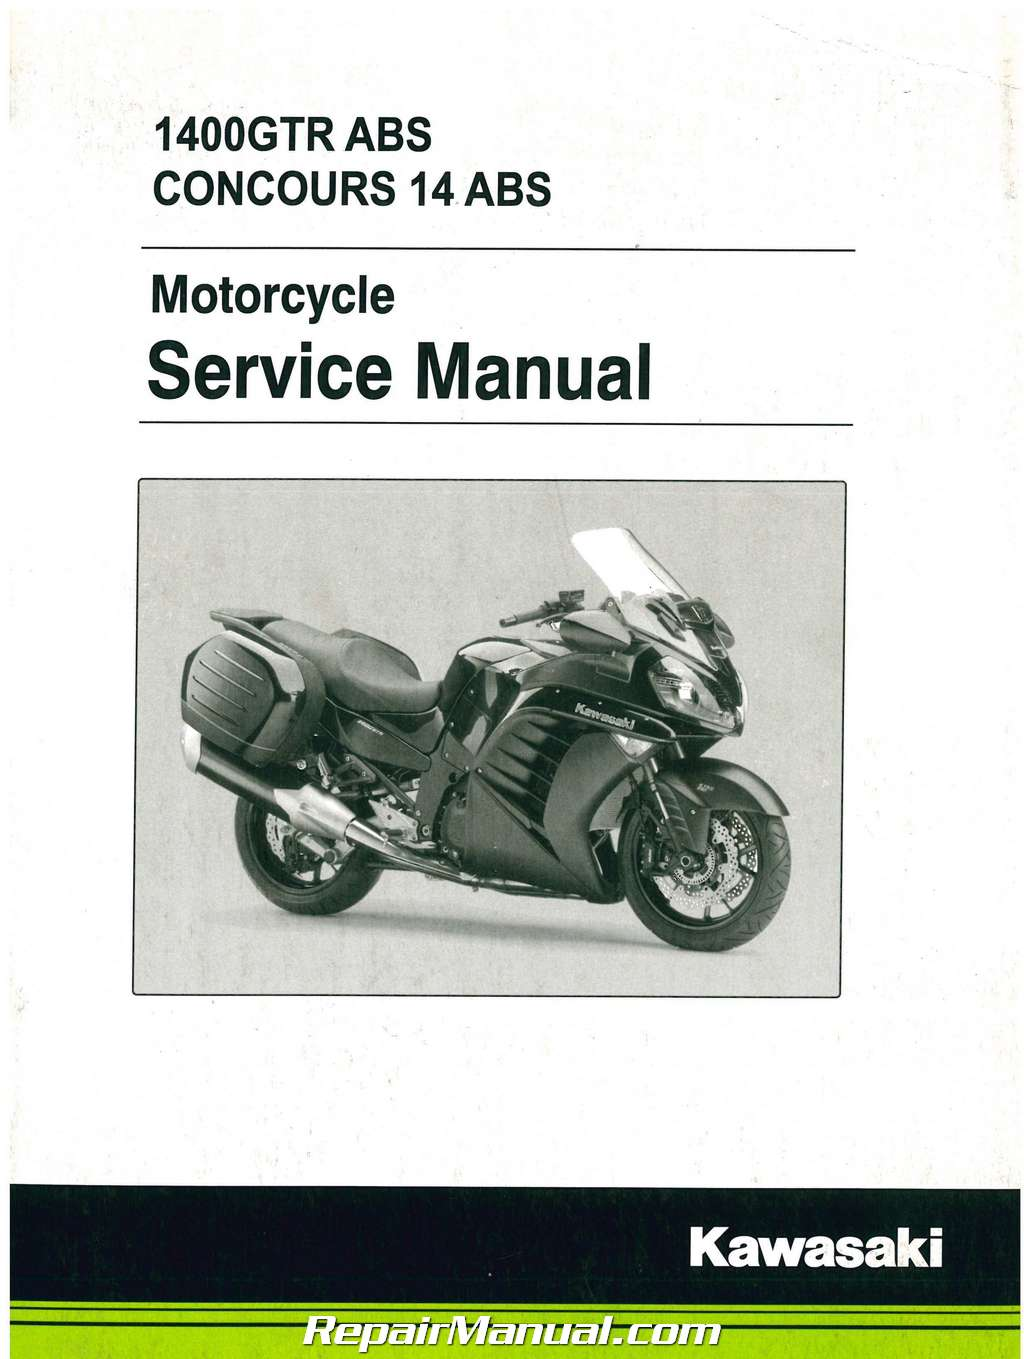 2015 kawasaki zg1400 concours abs non abs motorcycle service manual rh  repairmanual com 2018 Kawasaki Concours 2015 Kawasaki Concours without Bags